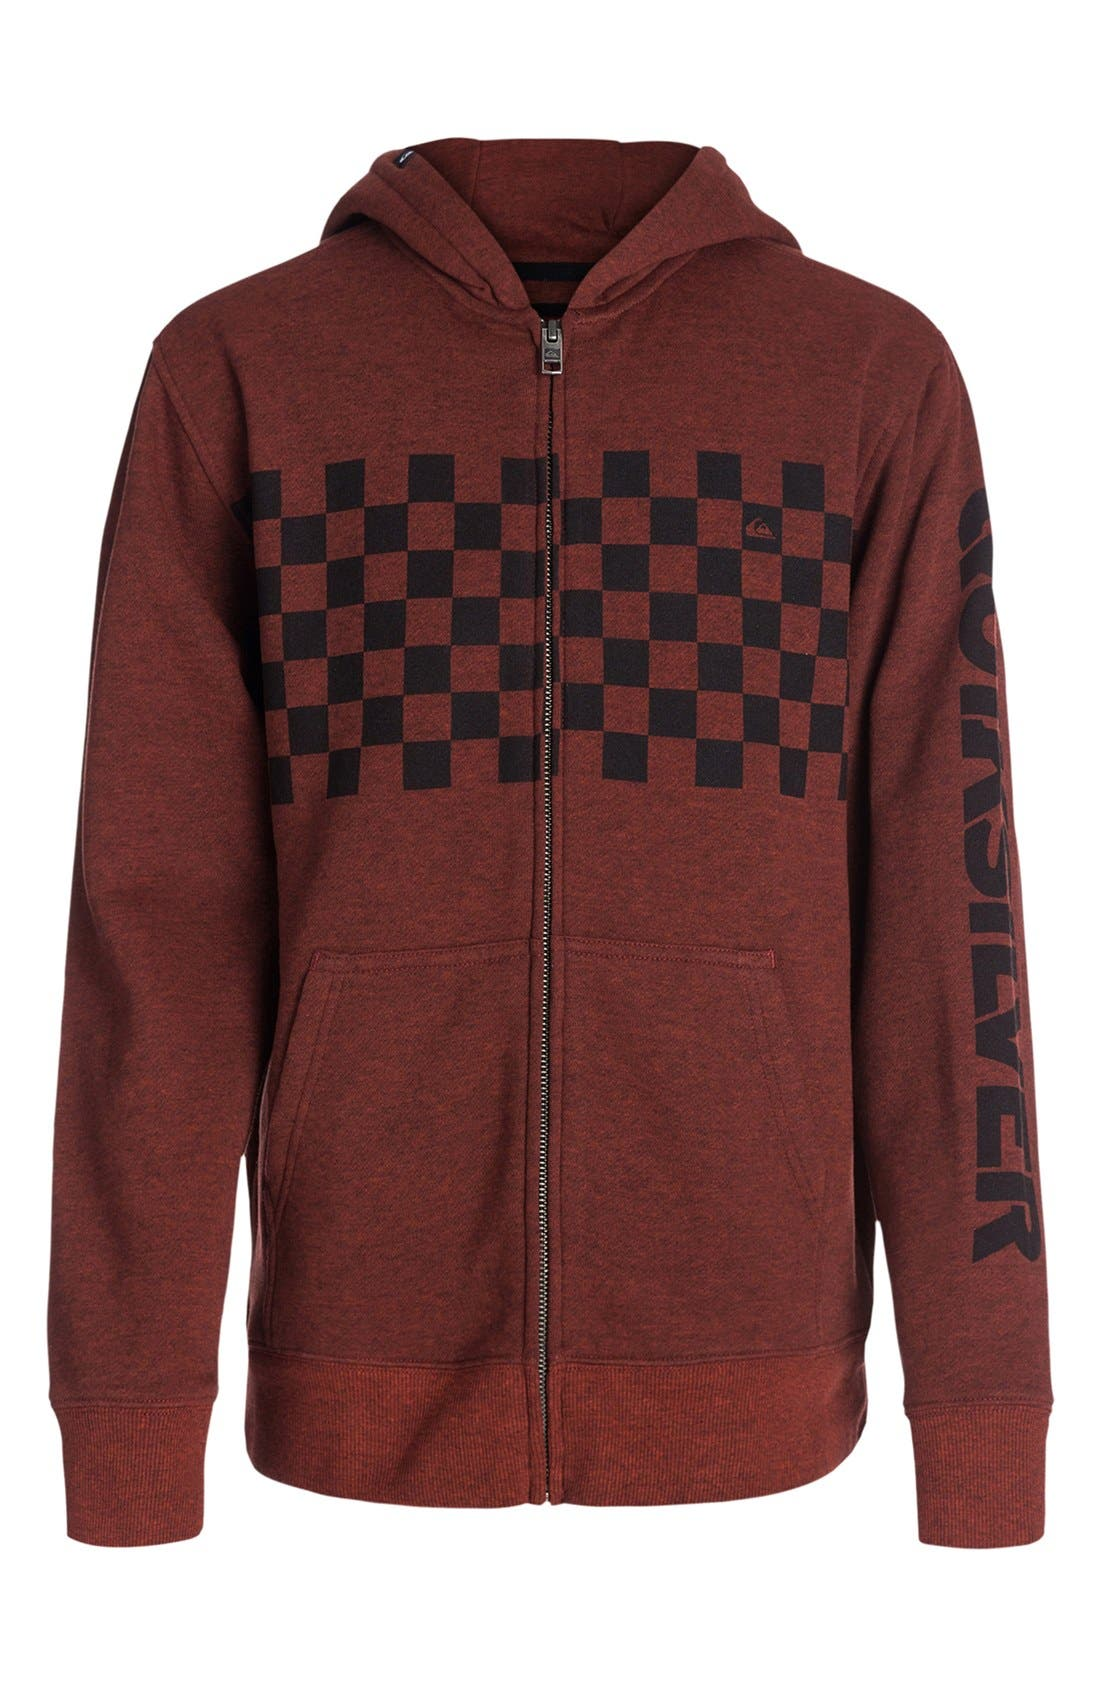 Main Image - Quiksilver 'Checker' Hoodie (Toddler Boys & Little Boys)